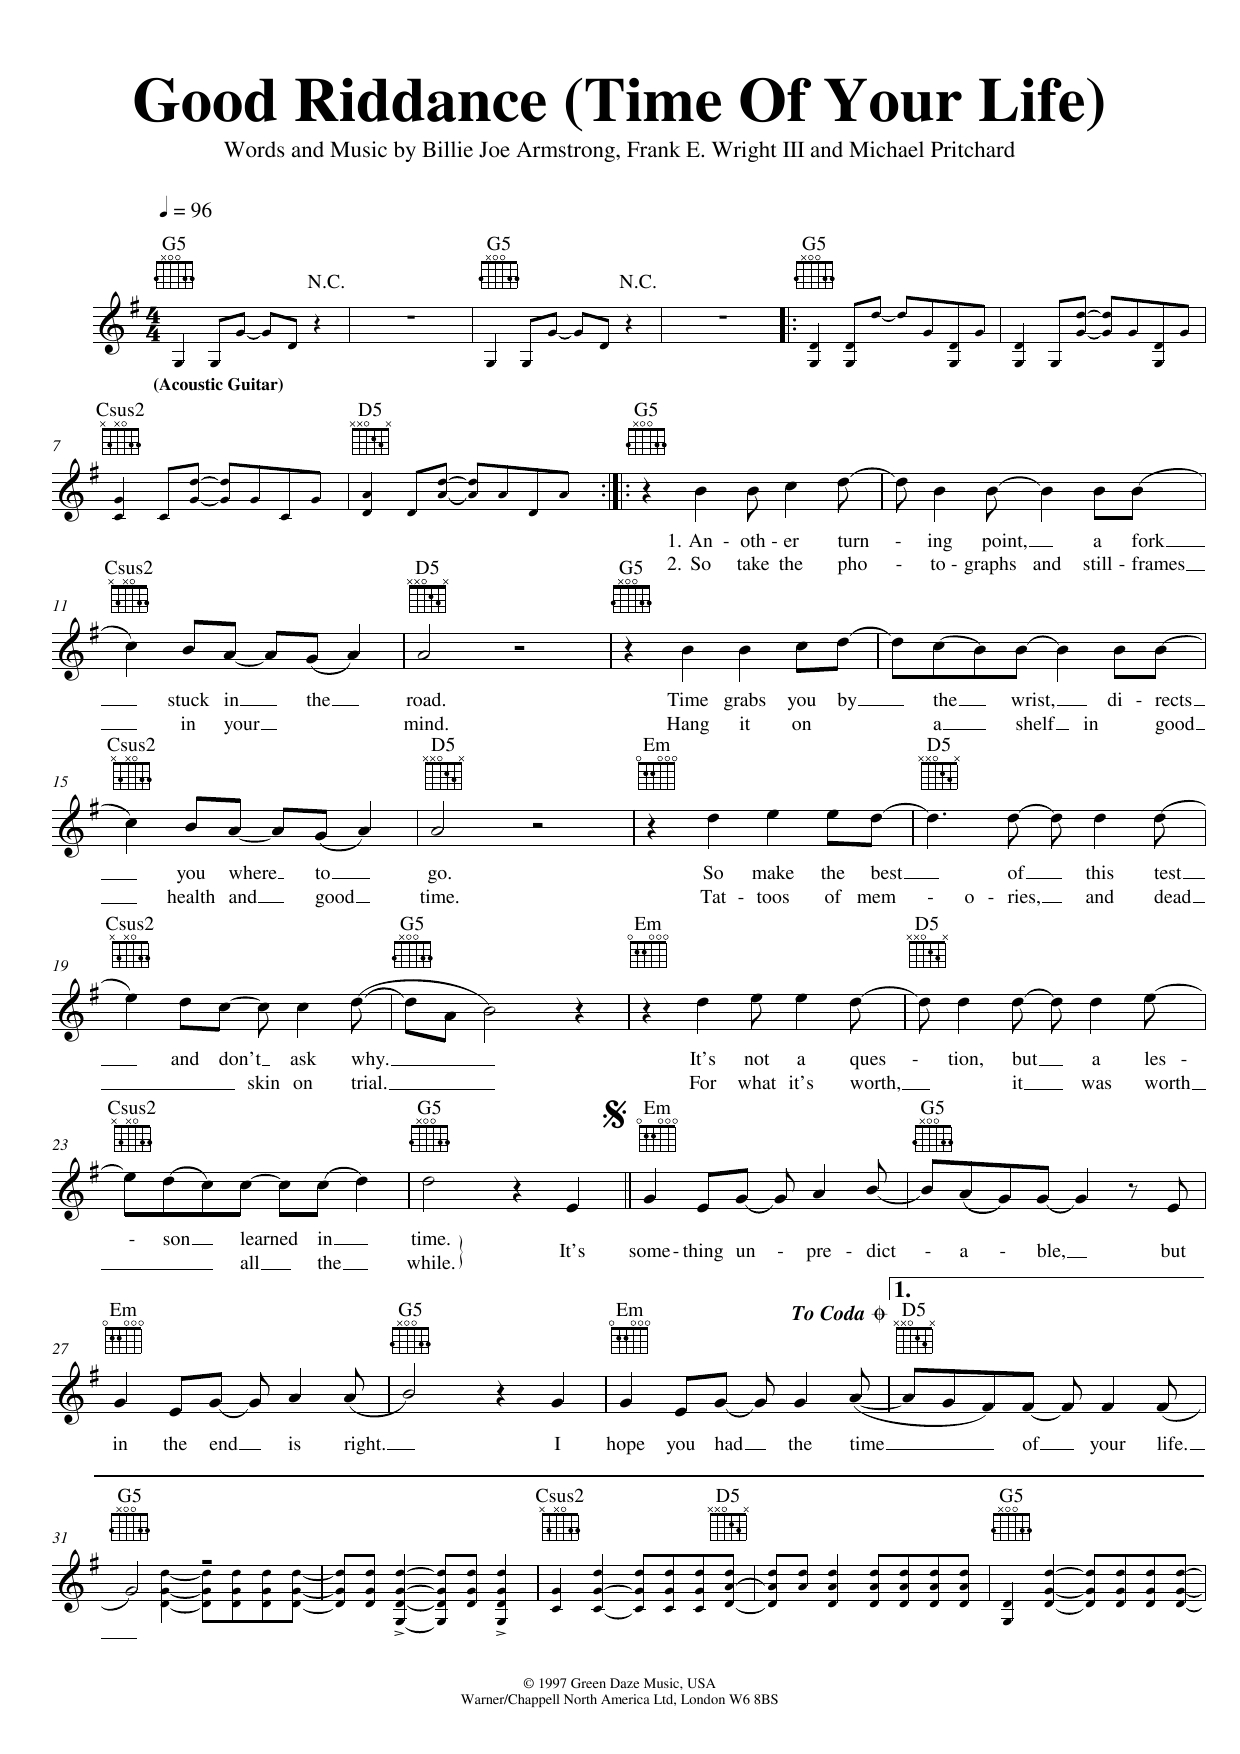 Good Riddance Chords Good Riddance Time Of Your Life Green Day Piano Vocal Guitar Right Hand Melody Digital Sheet Music